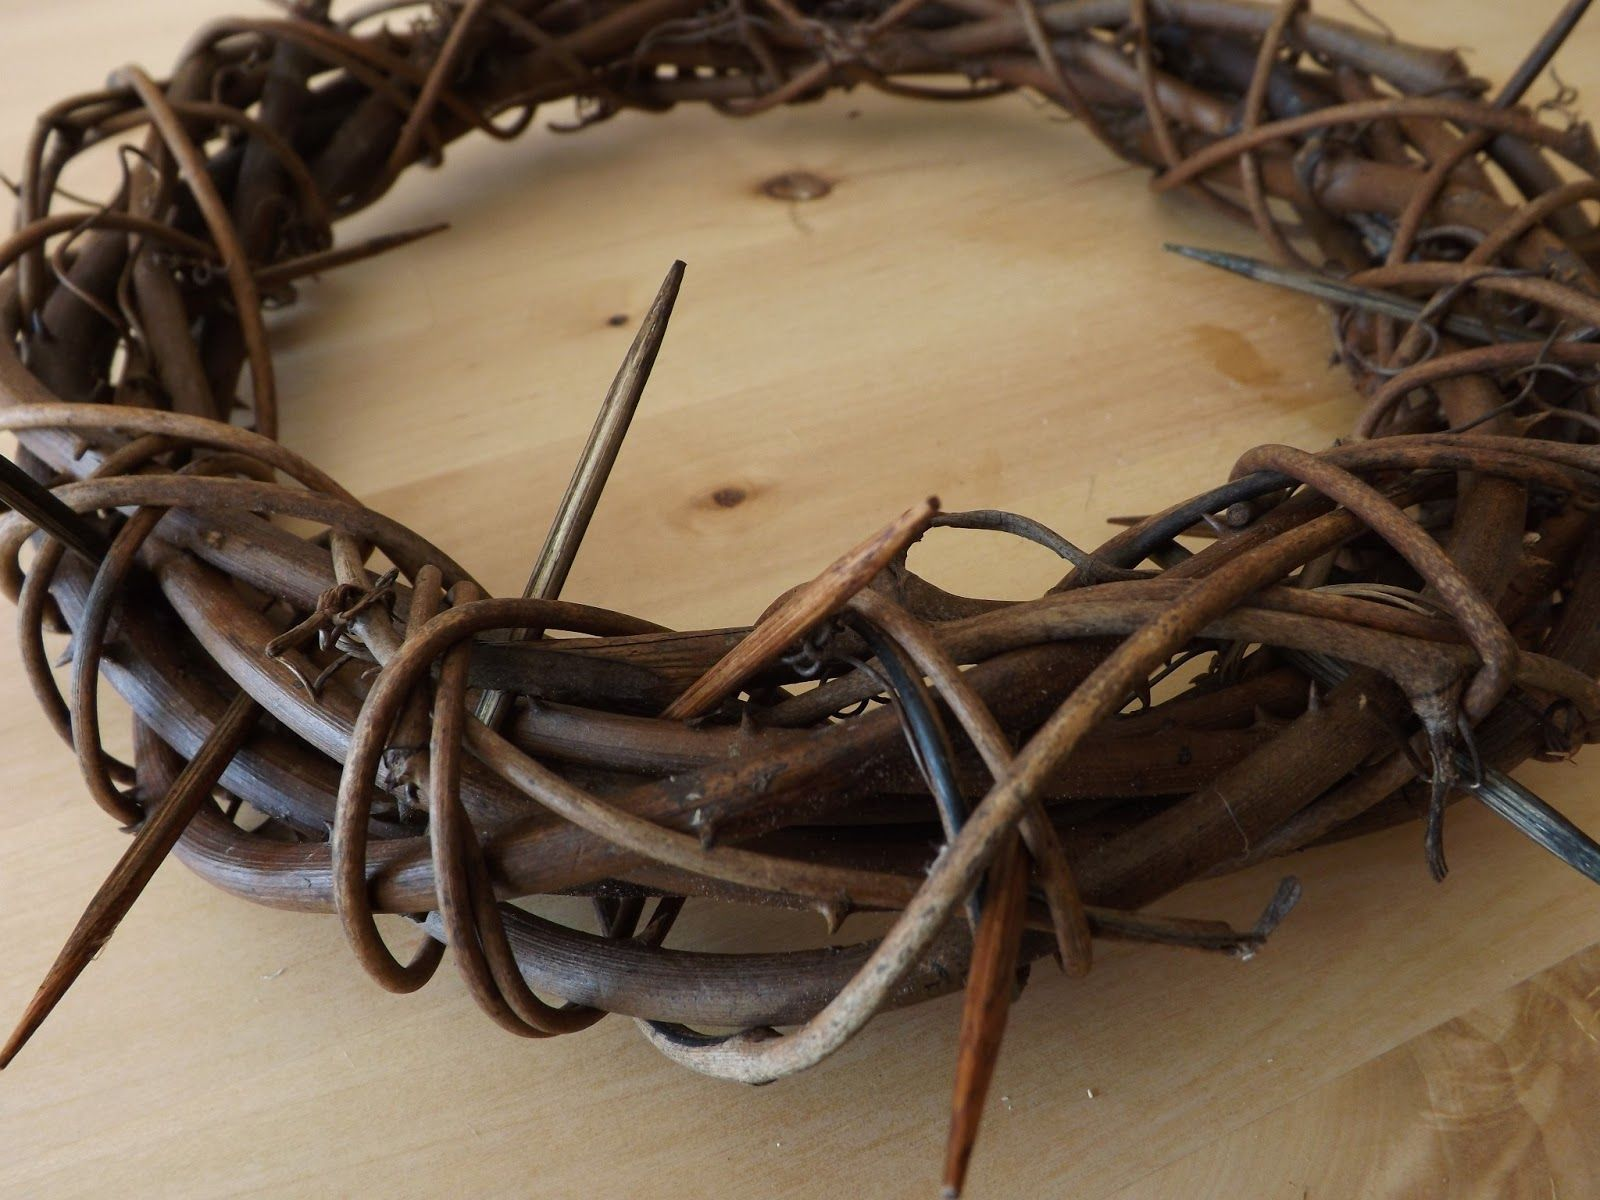 Grape vine for crafts - Find This Pin And More On Adult Crafts Diy Easter Crown Of Thorns Grapevine Tutorial